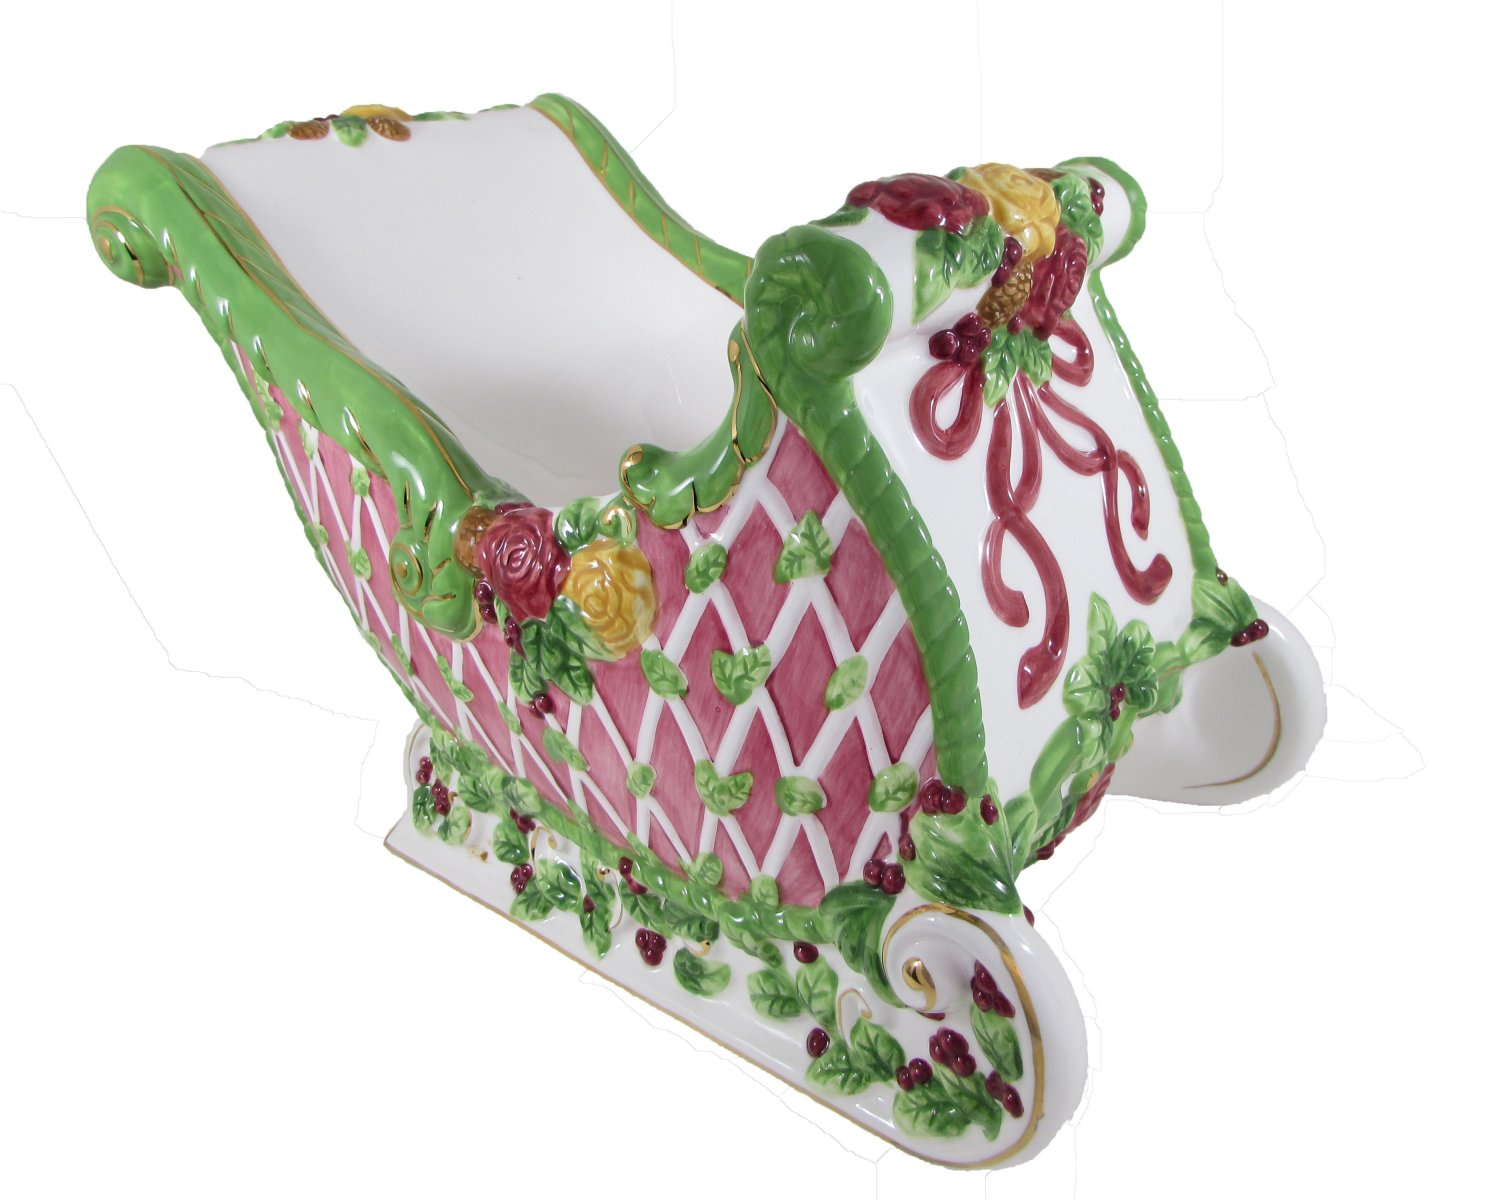 Royal Albert Old Country Roses Season Of Colour Christmas Sleigh Dish Centerpiece Candle Holder